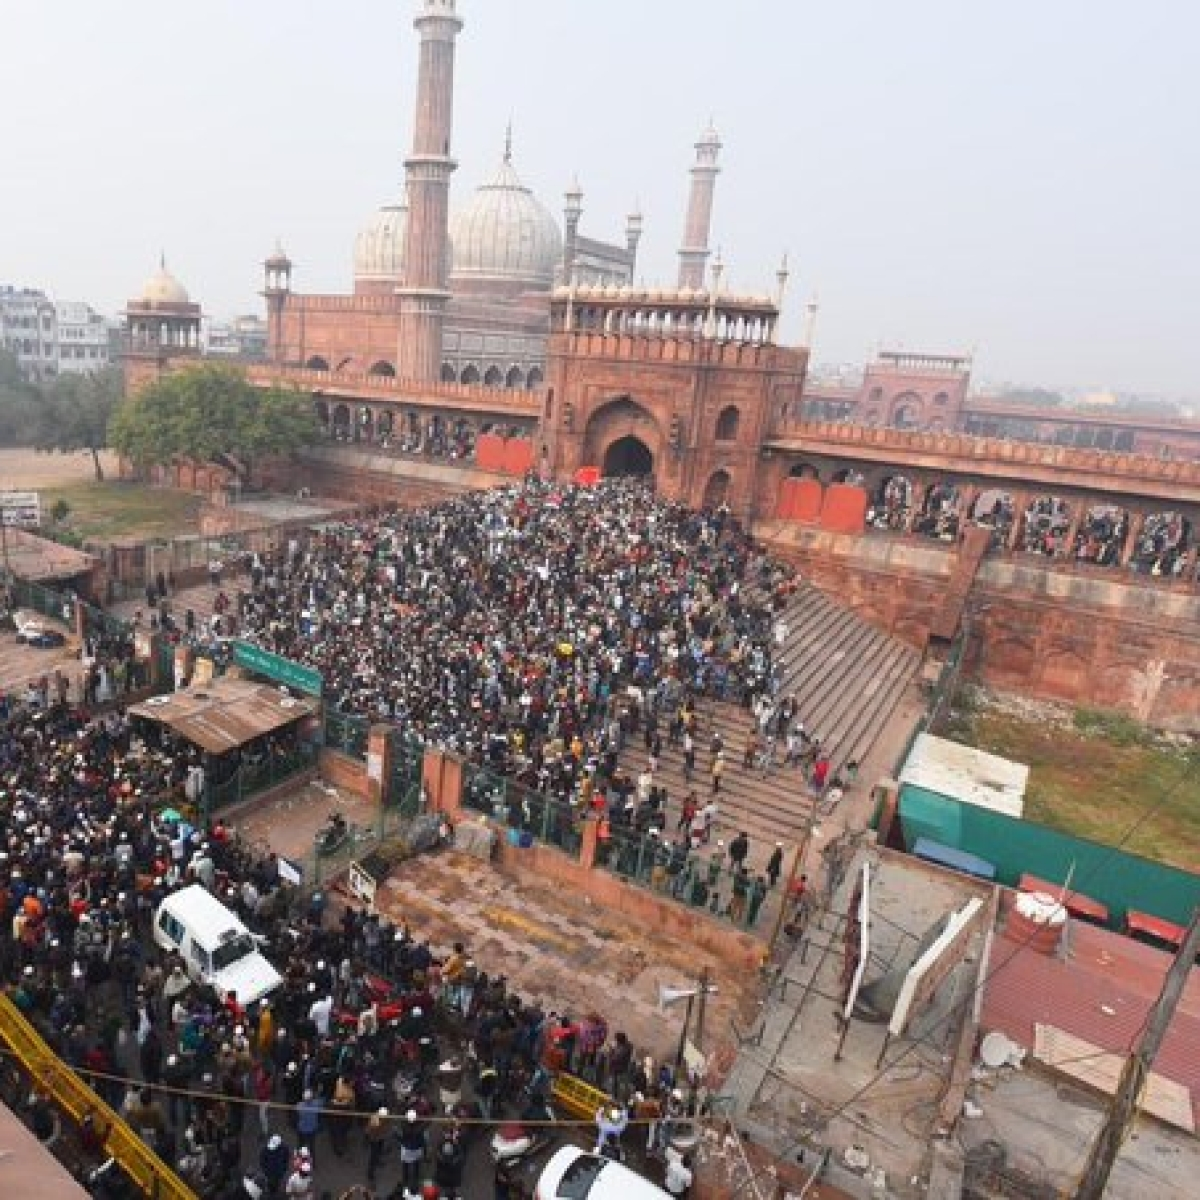 CAA: Protests at Jama Masjid peaceful